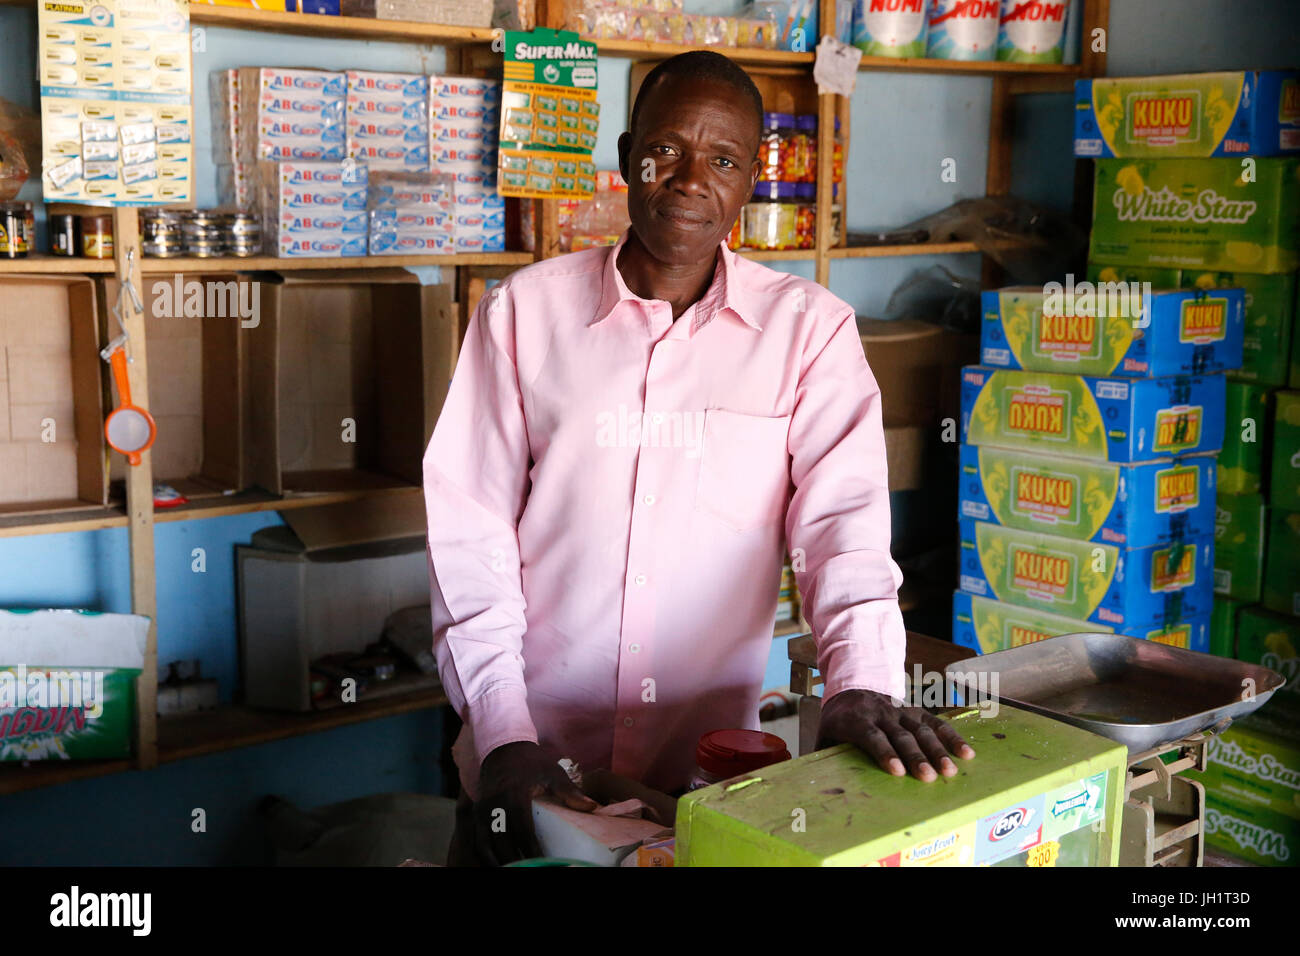 Uganda Microfinance Foundation client Genesis Pacutho, who received 4 loans from UMF to start and improve businesses. - Stock Image